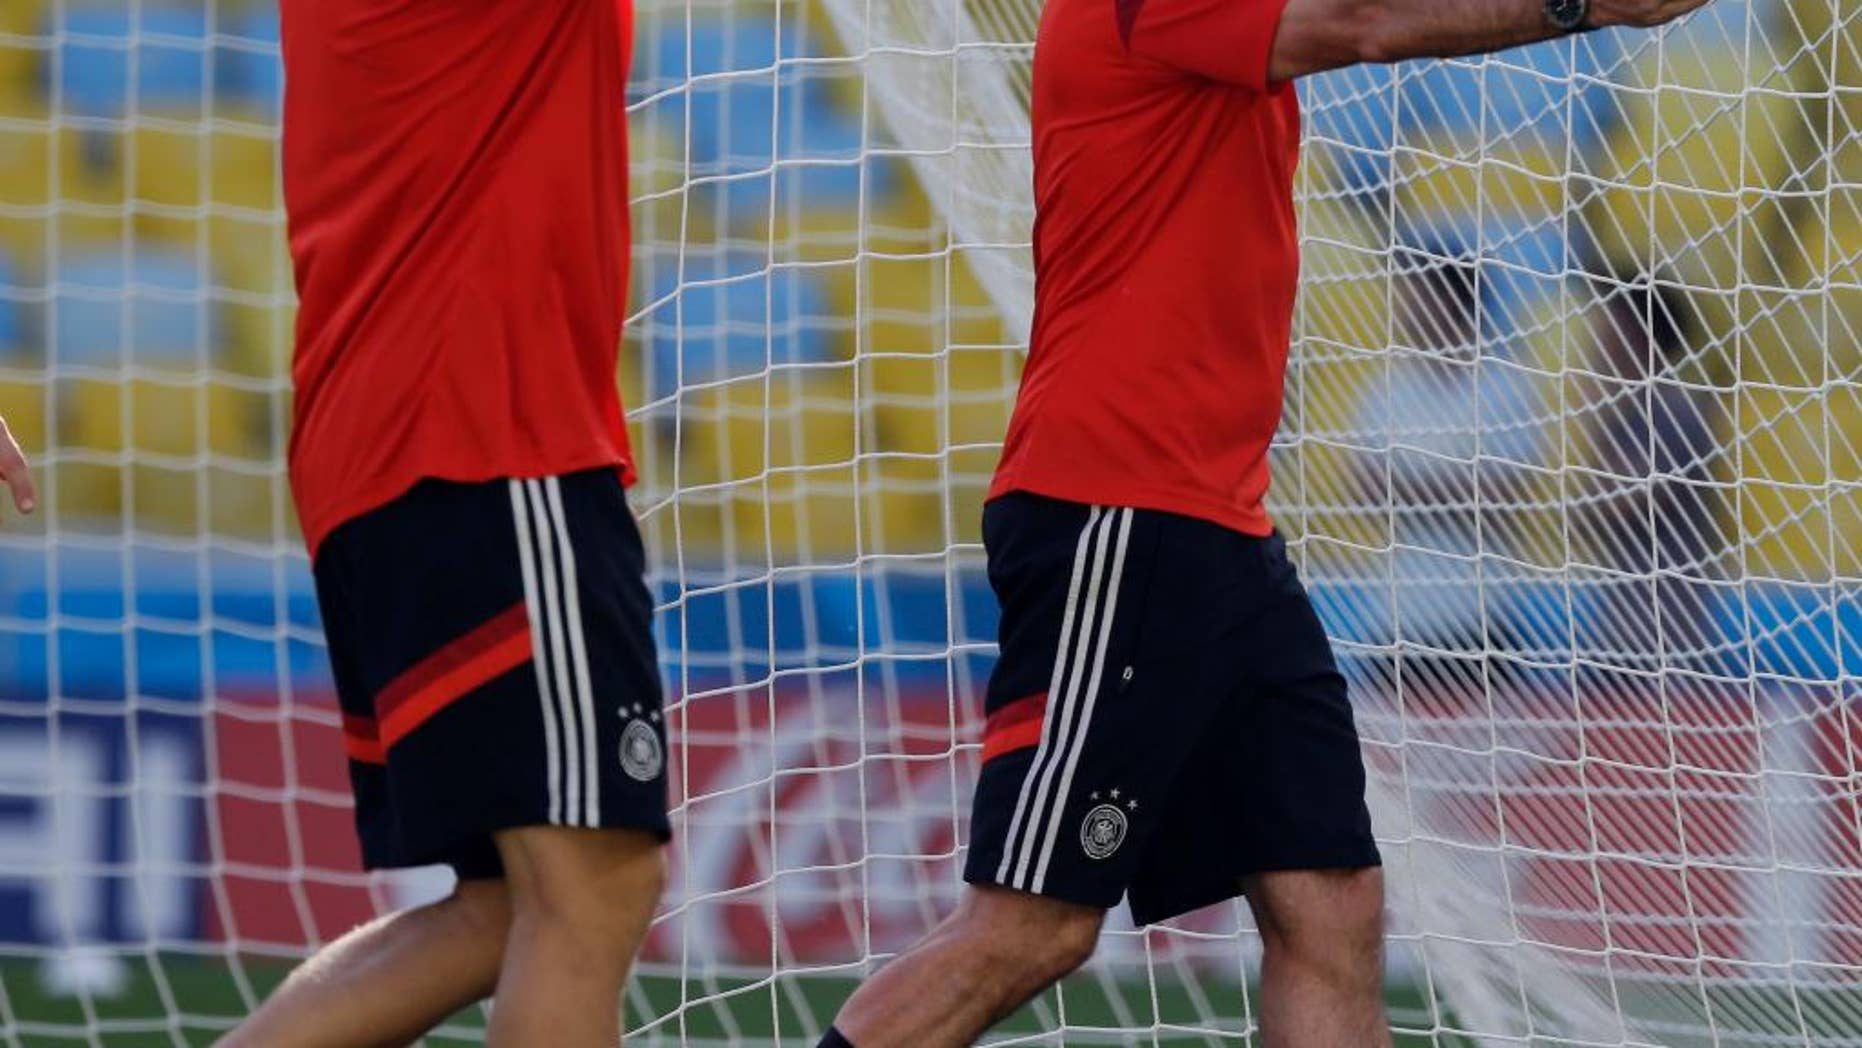 Germany's head coach Joachim Loew, right, with an assistant, check the pitch during an official training session a day prior to the quarter final World Cup soccer match between France and Germany at the Maracana stadium in Rio de Janeiro, Brazil, Thursday, July 3, 2014. (AP Photo/Thanassis Stavrakis)